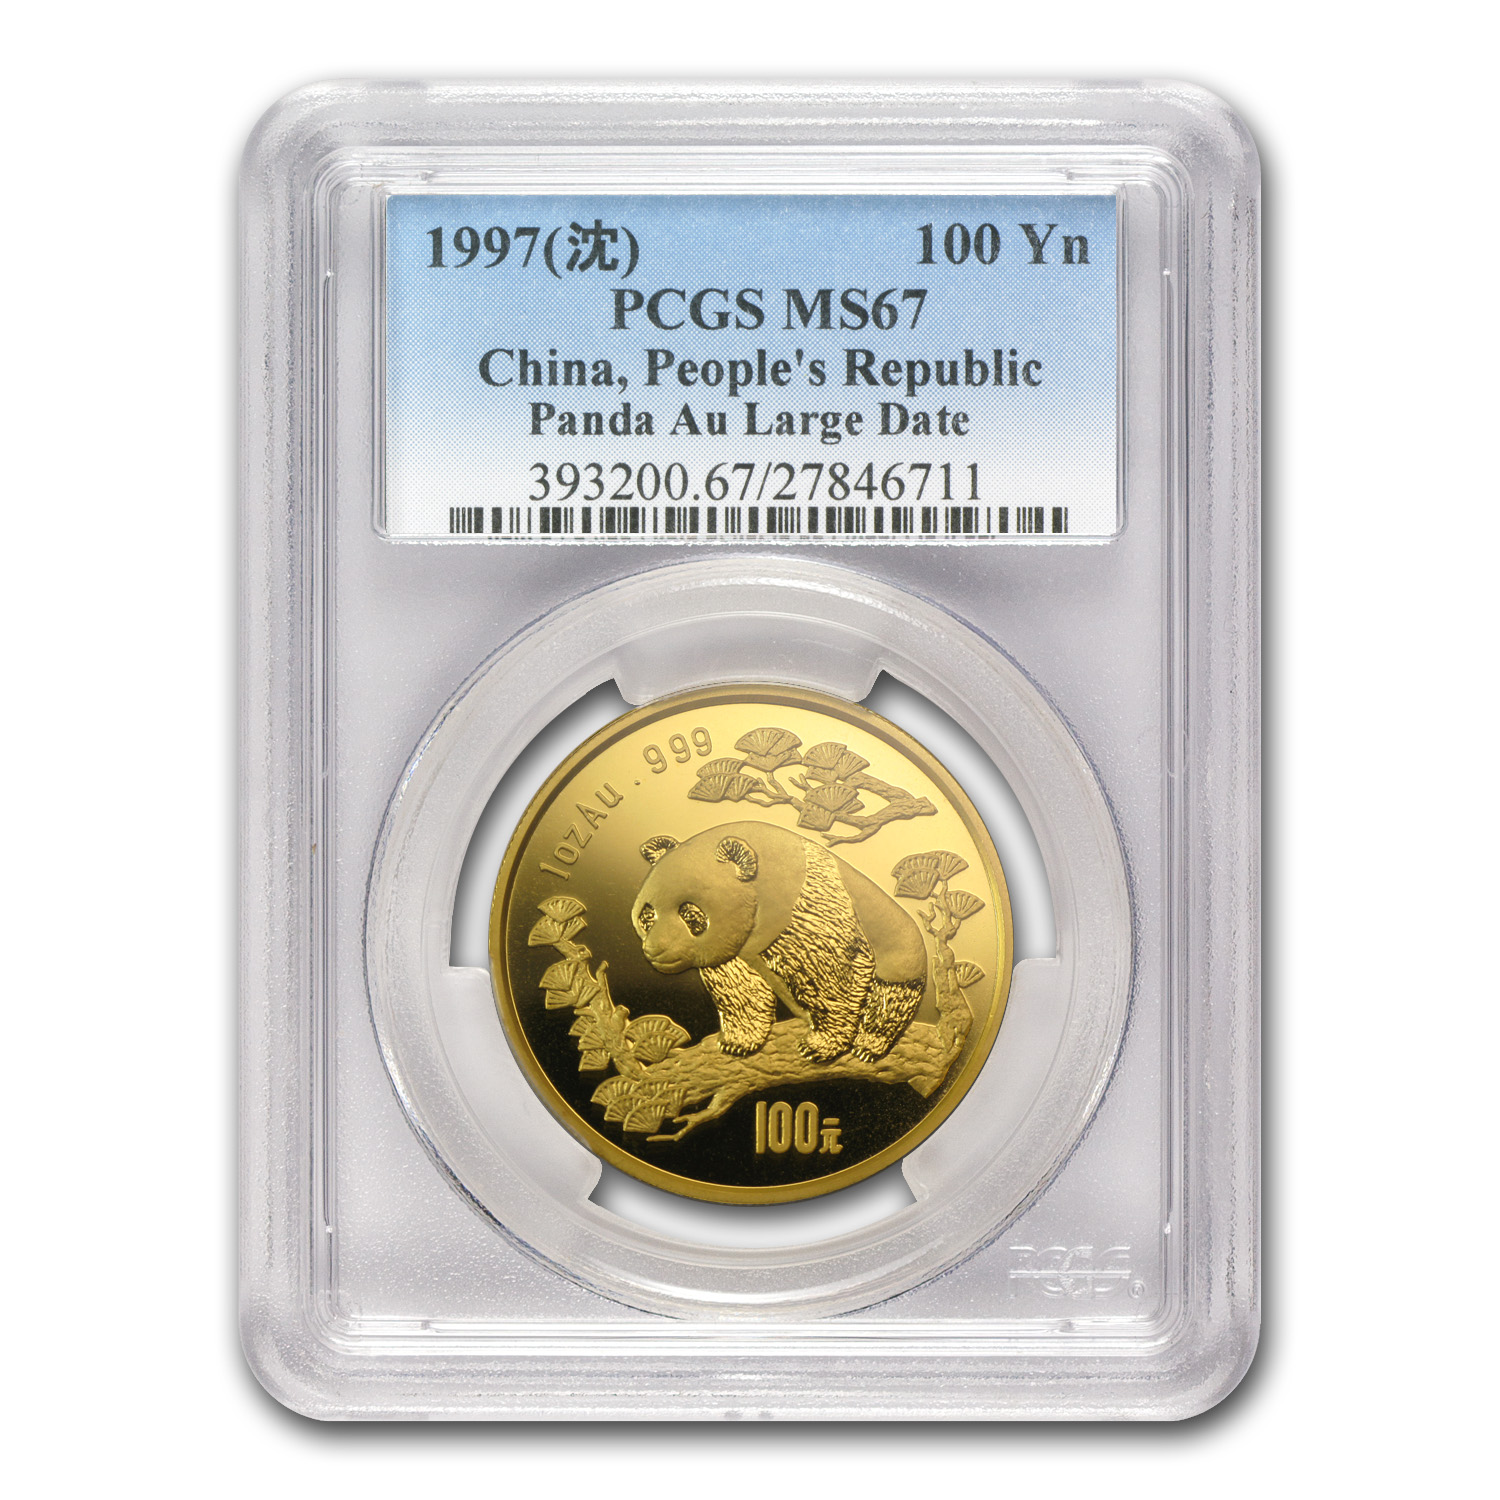 1997 China 1 oz Gold Panda Large Date MS-67 PCGS